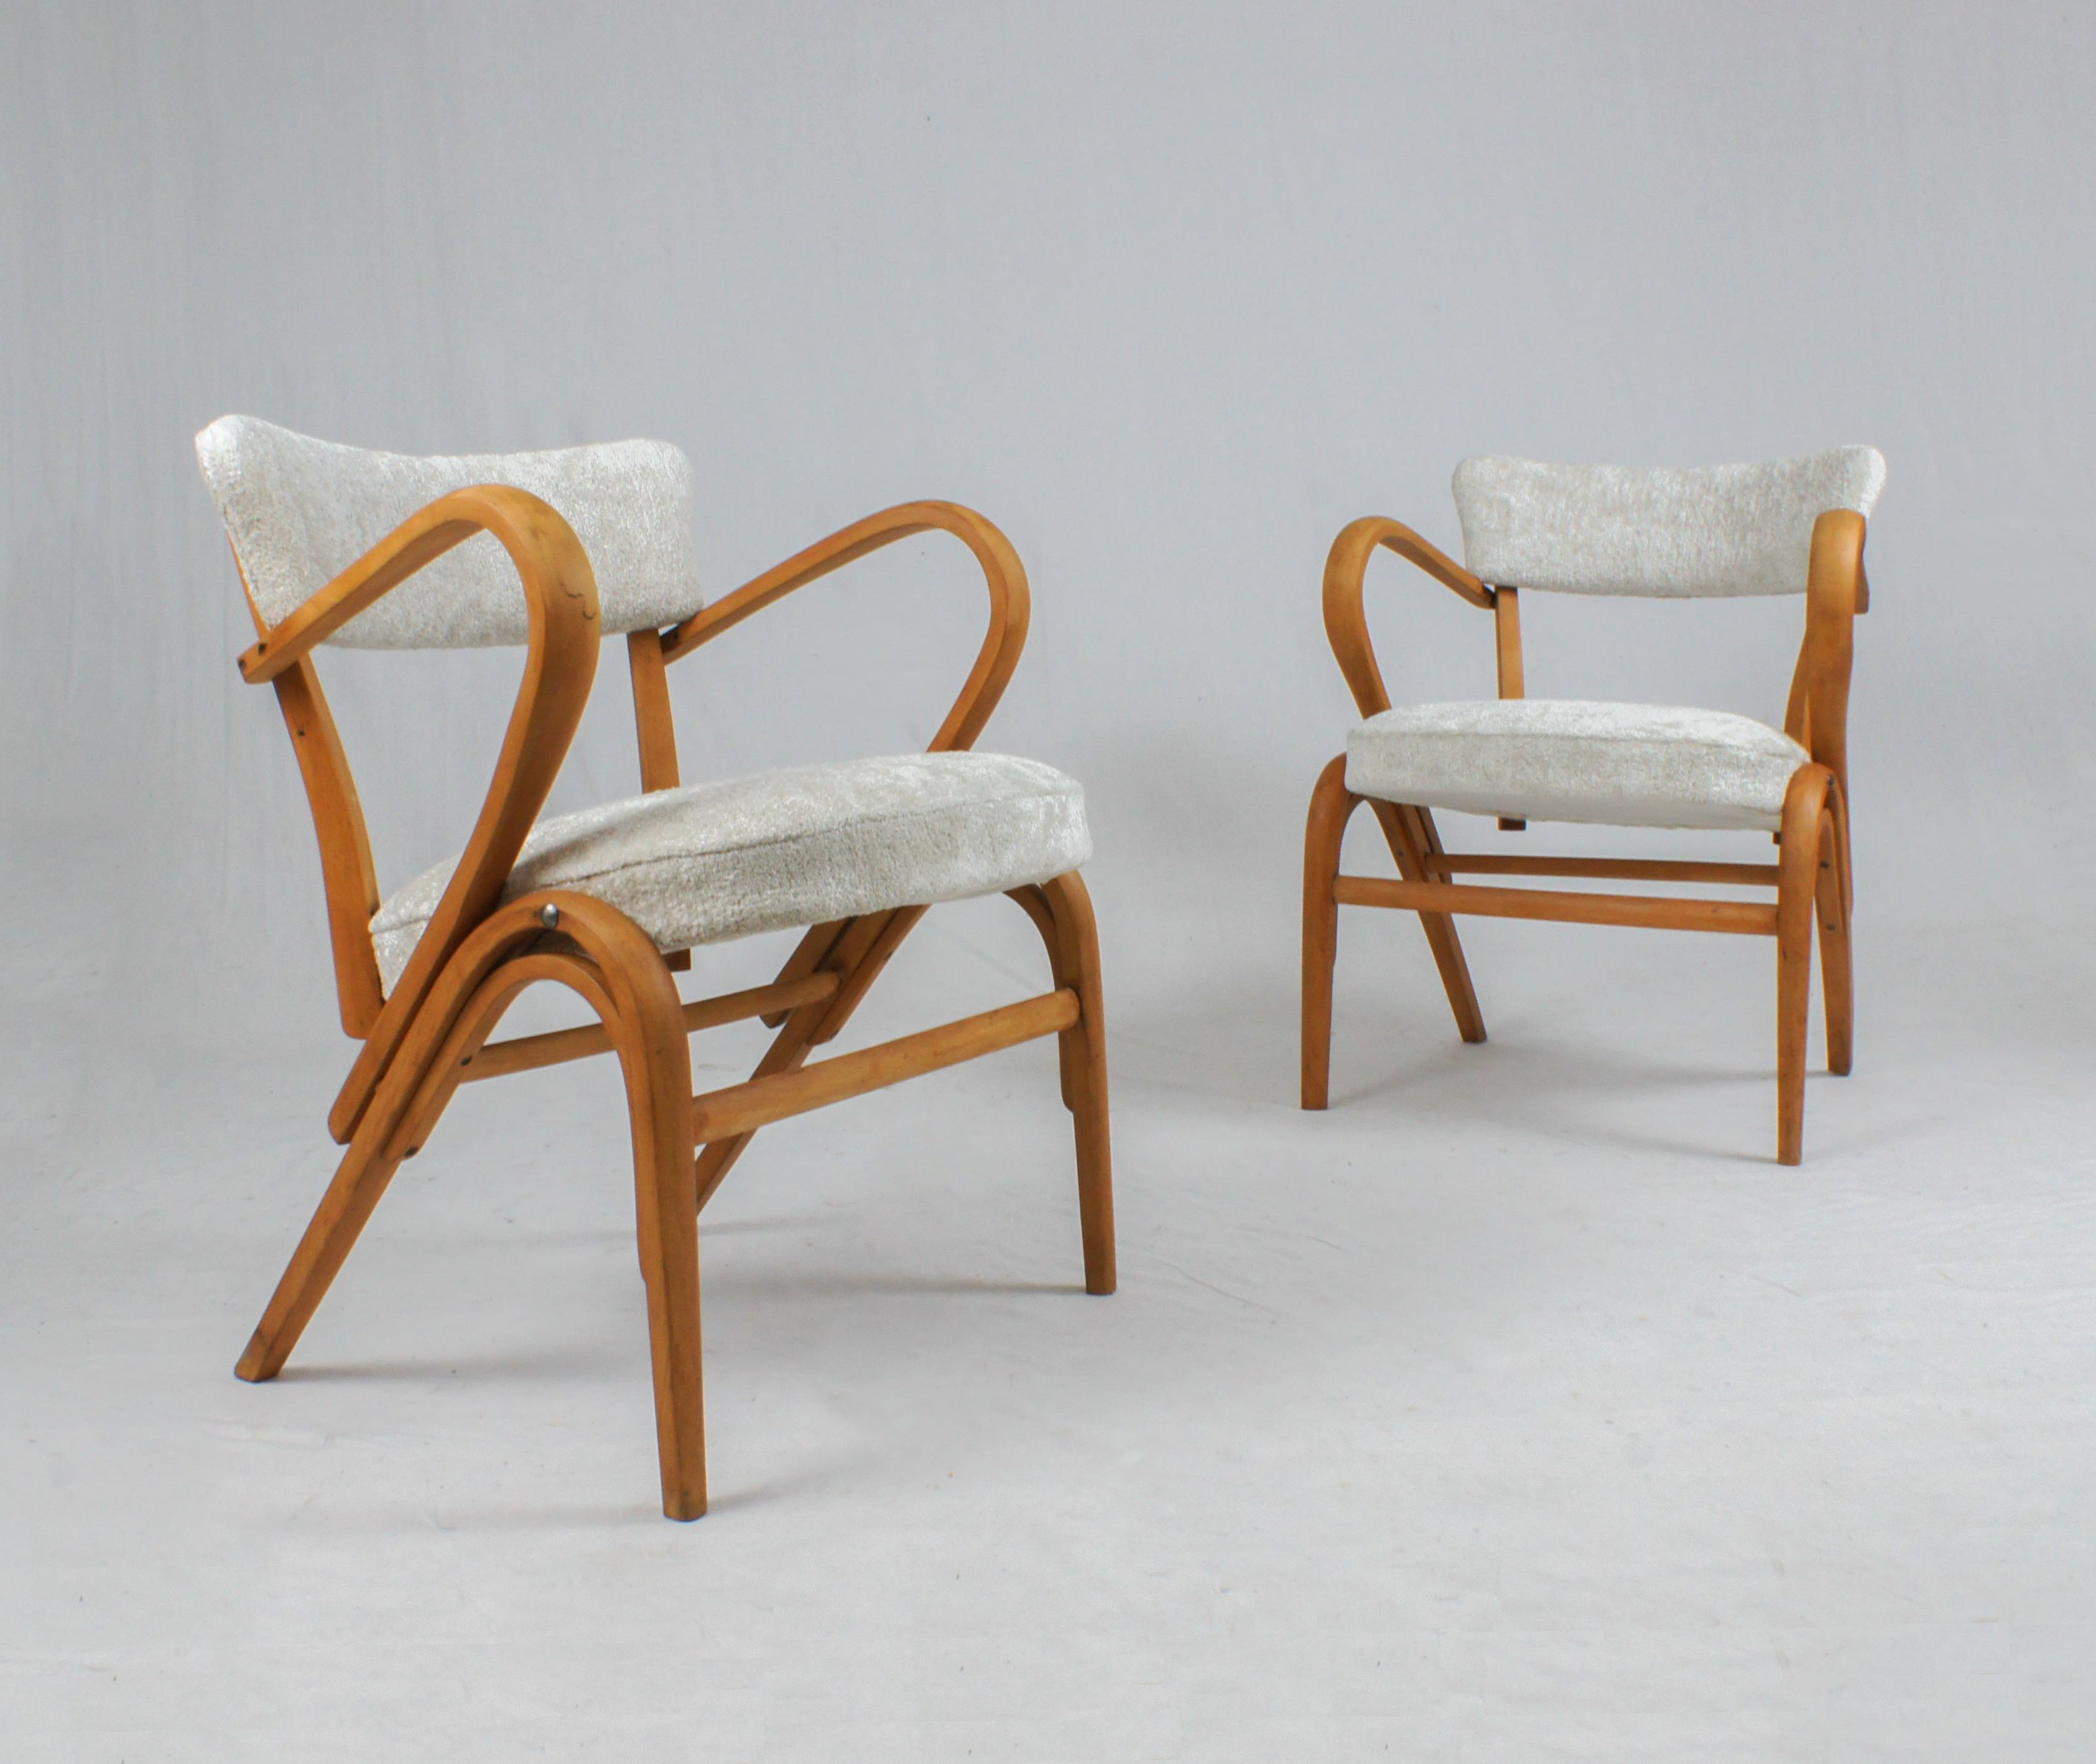 Miraculous Pair Of Italian Bent Wood Lounge Chairs 1940S 110942 Gmtry Best Dining Table And Chair Ideas Images Gmtryco